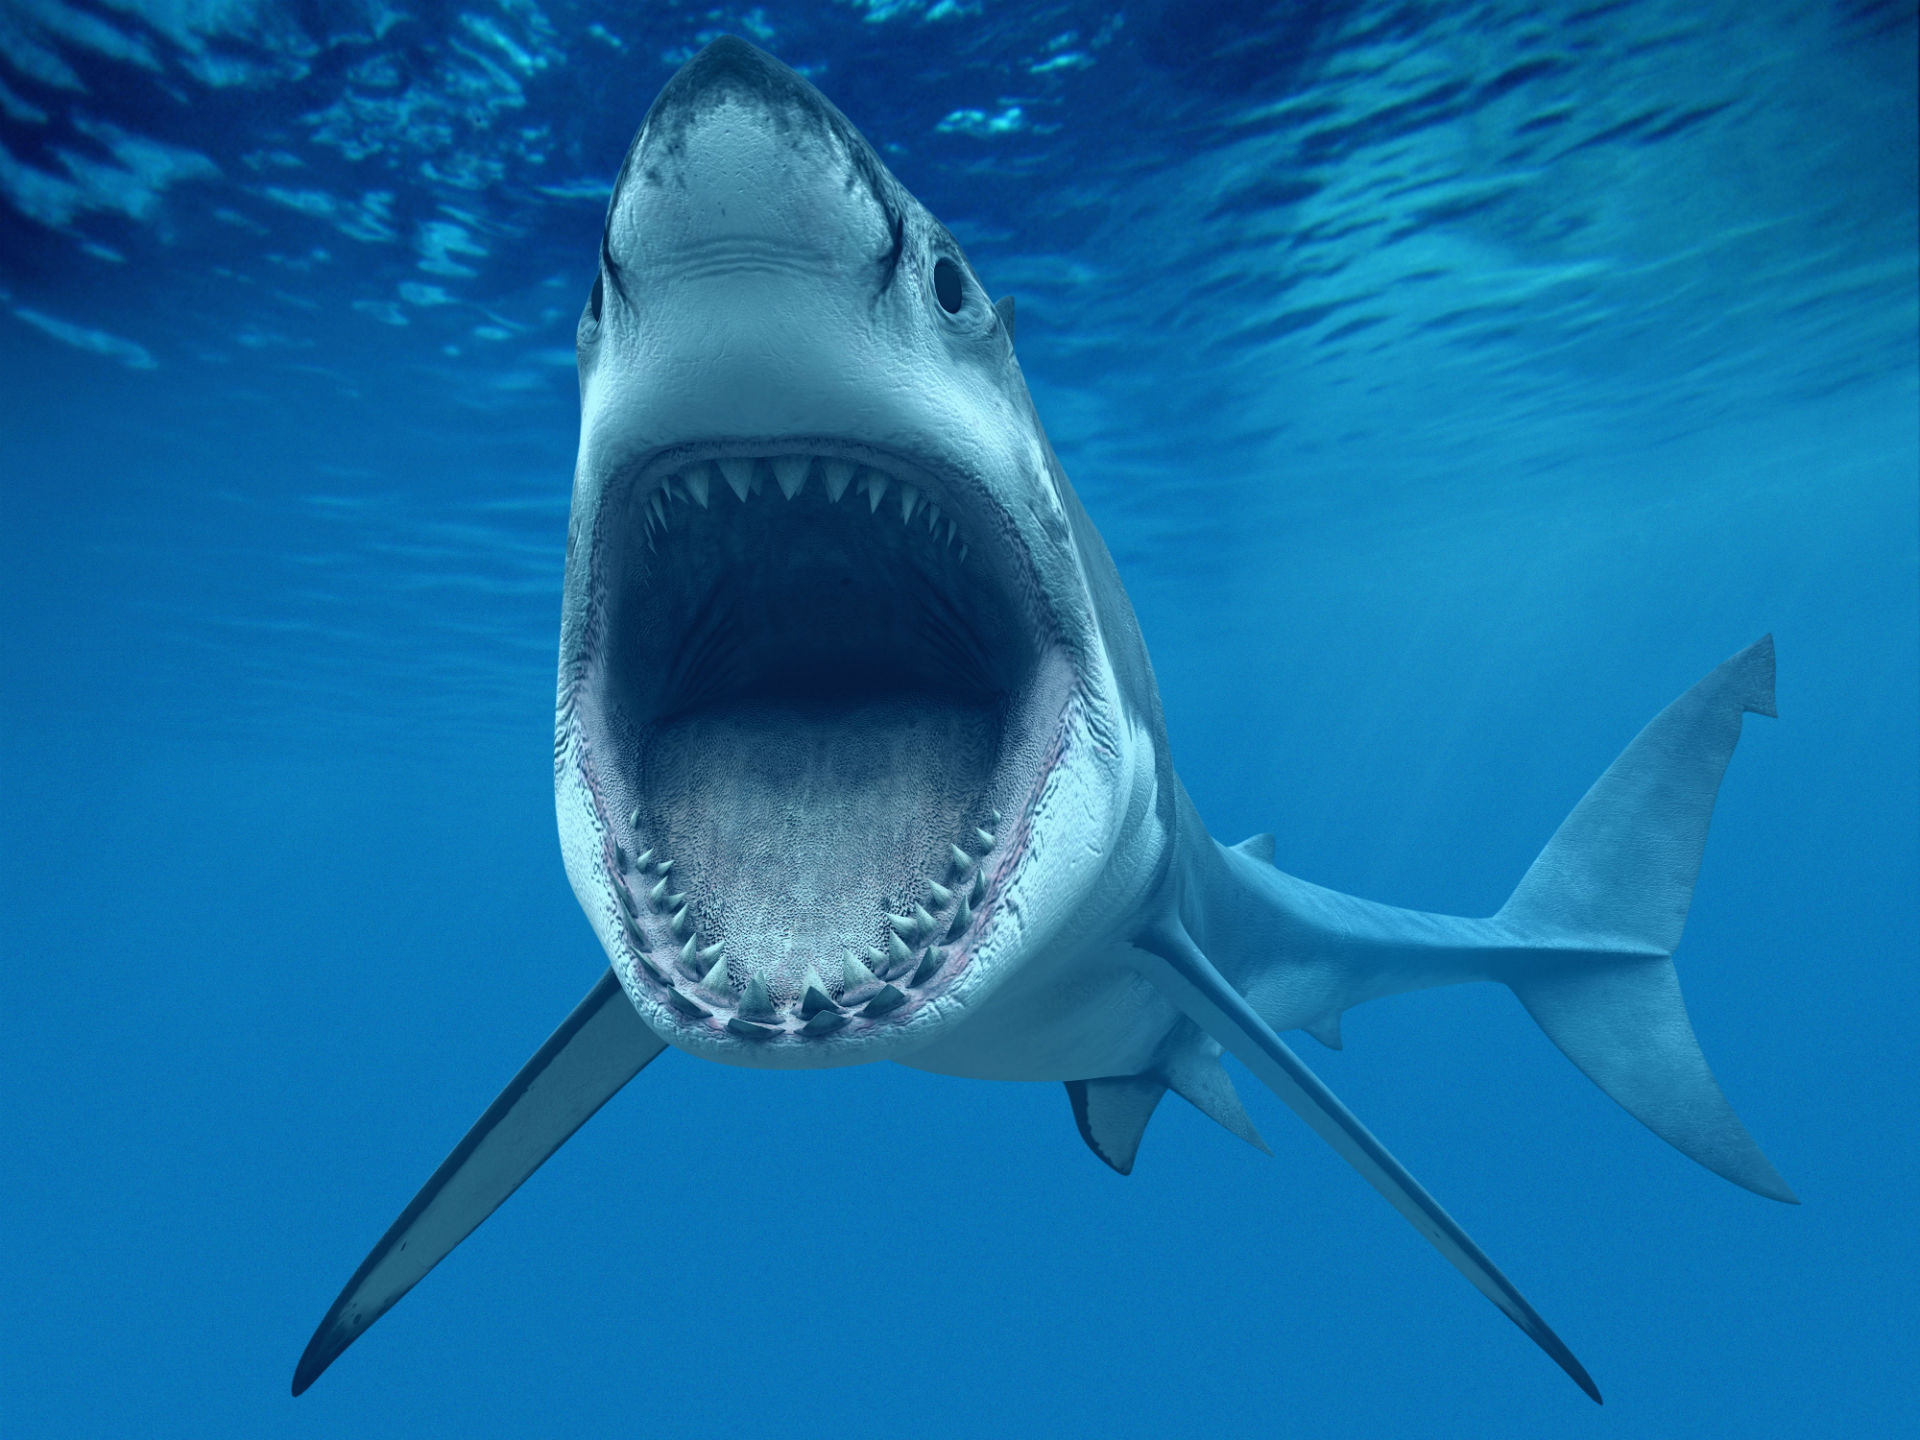 Shark Fish Great WhiteTeeth Underwater Blue Ocean CG wallpaper 1920x1440